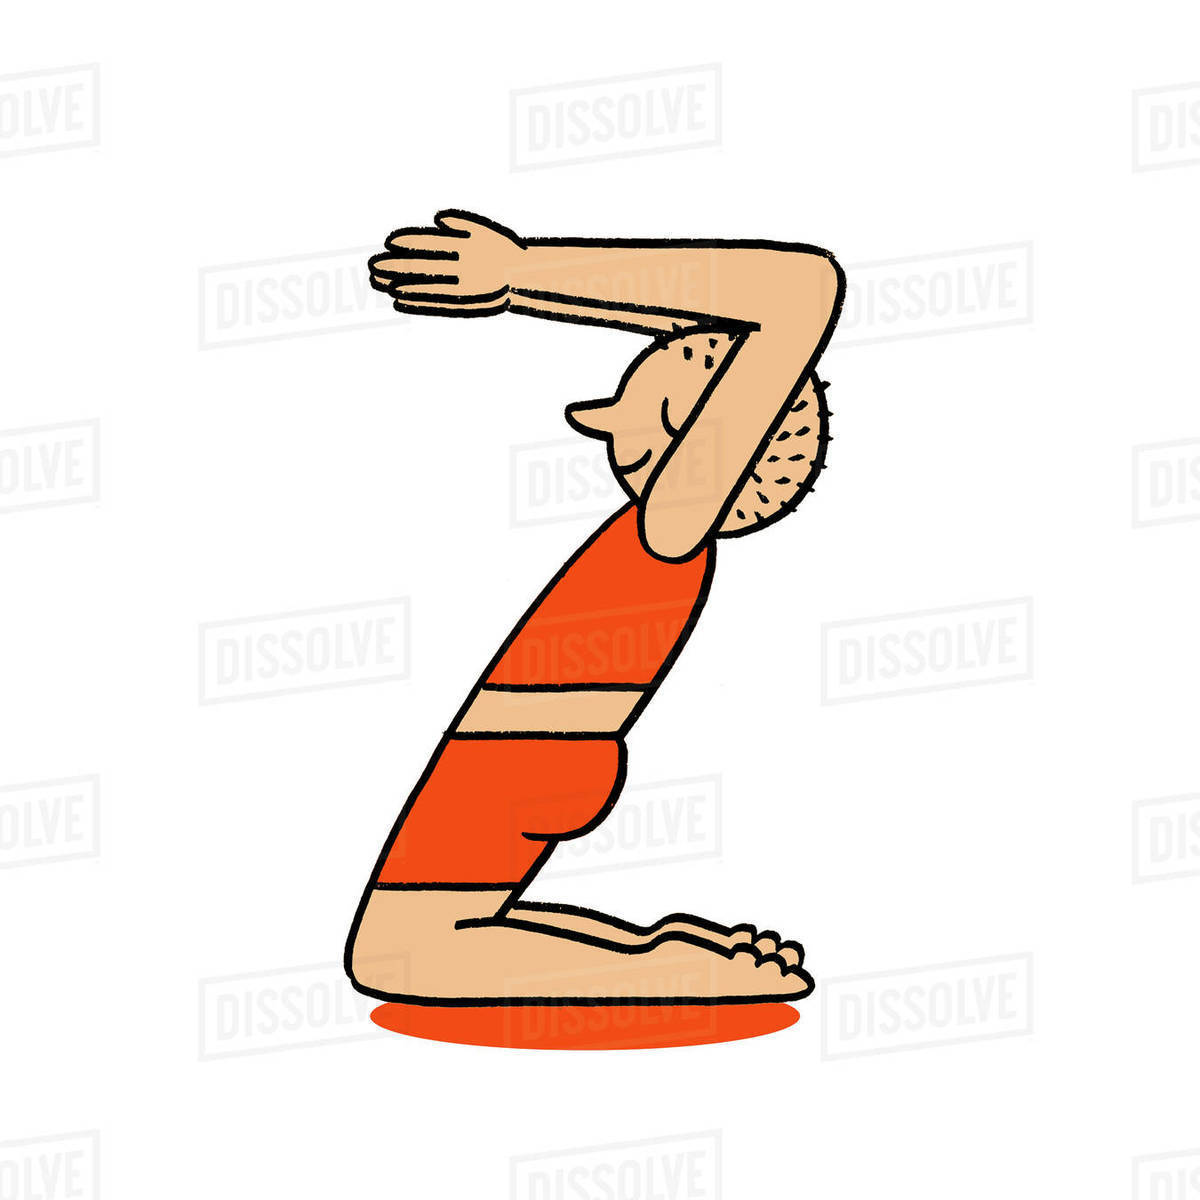 Illustration of a man practicing yoga pose in the letter D377_37_37